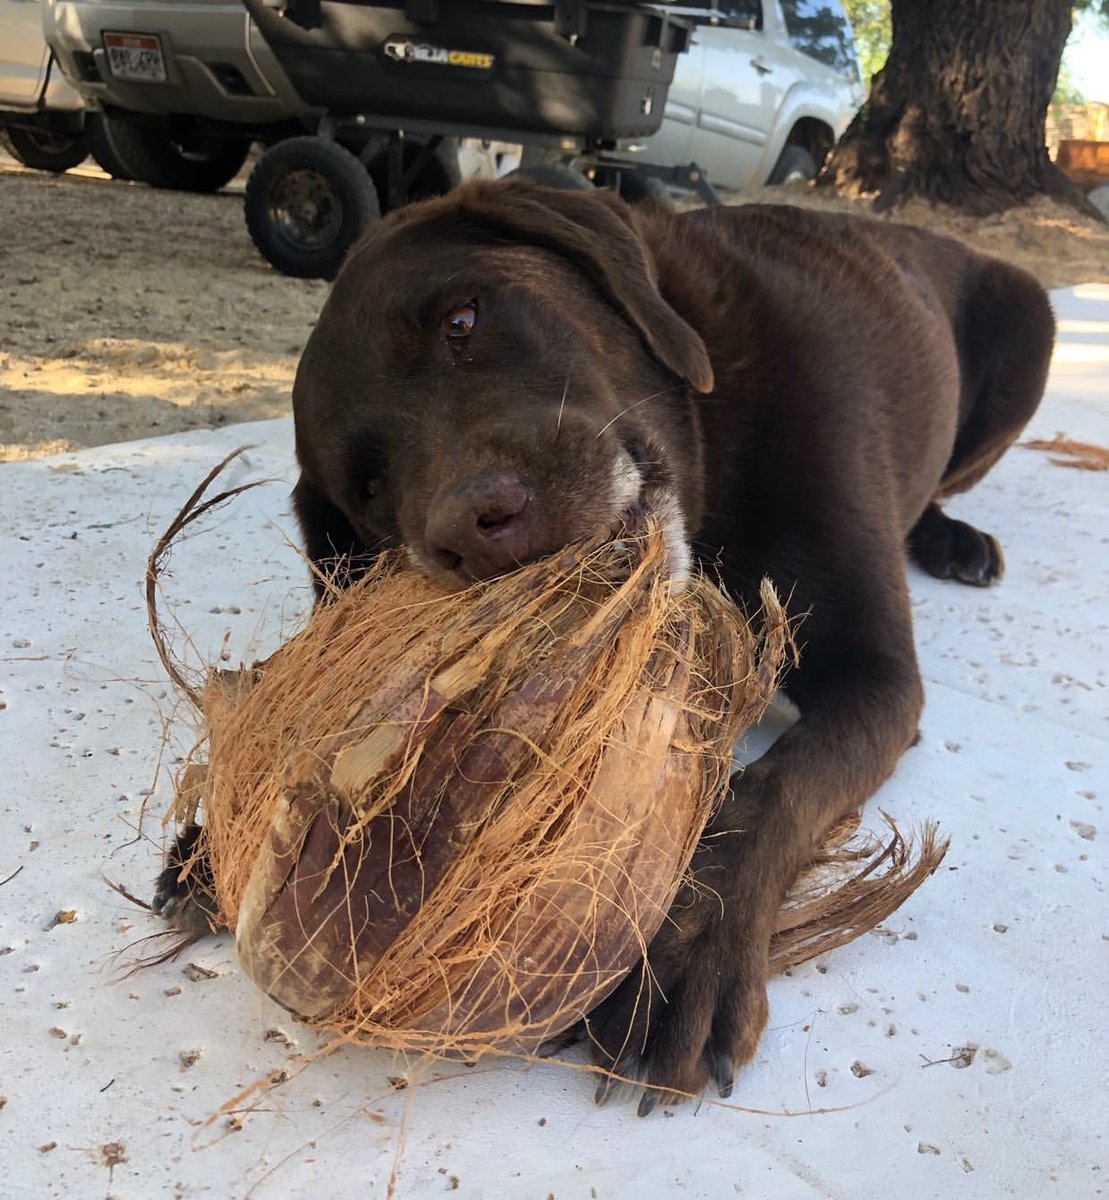 This is Jackson. She runs outside every time she hears a coconut fall off the tree. They're her favorite thing in the world. 13/10